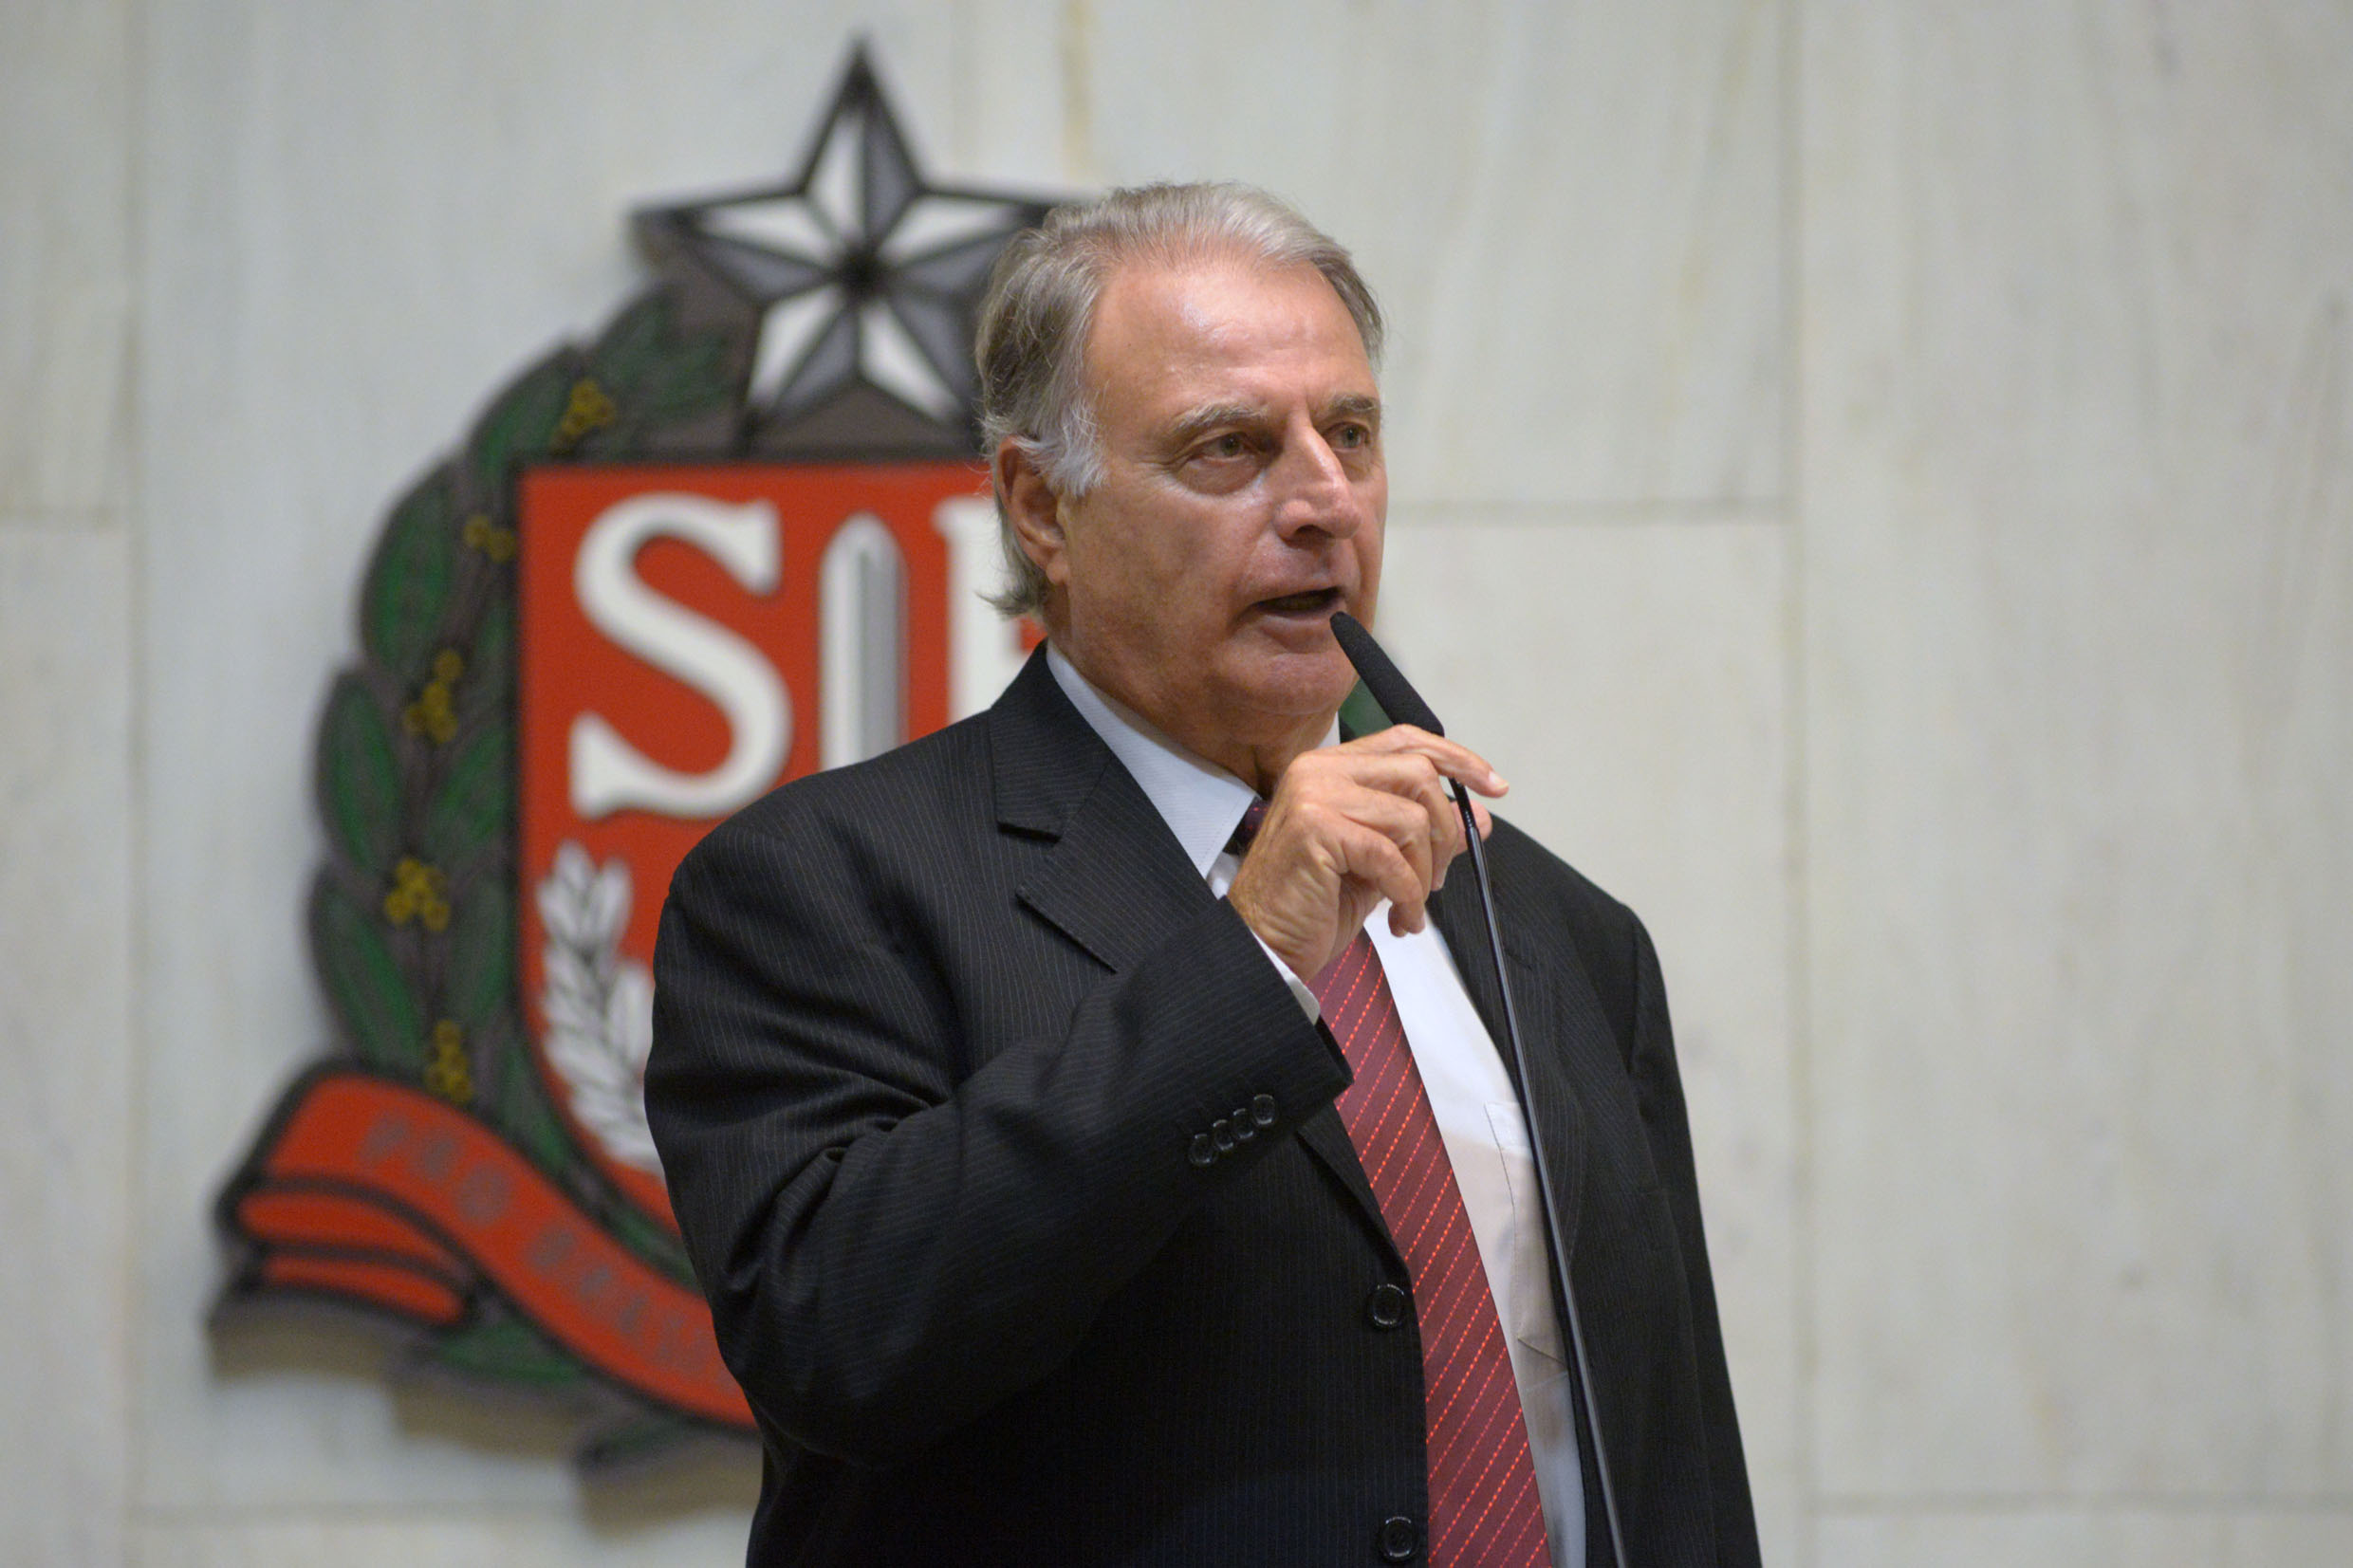 Conte Lopes <a style='float:right' href='https://www3.al.sp.gov.br/repositorio/noticia/N-04-2019/fg233083.jpg' target=_blank><img src='/_img/material-file-download-white.png' width='14px' alt='Clique para baixar a imagem'></a>